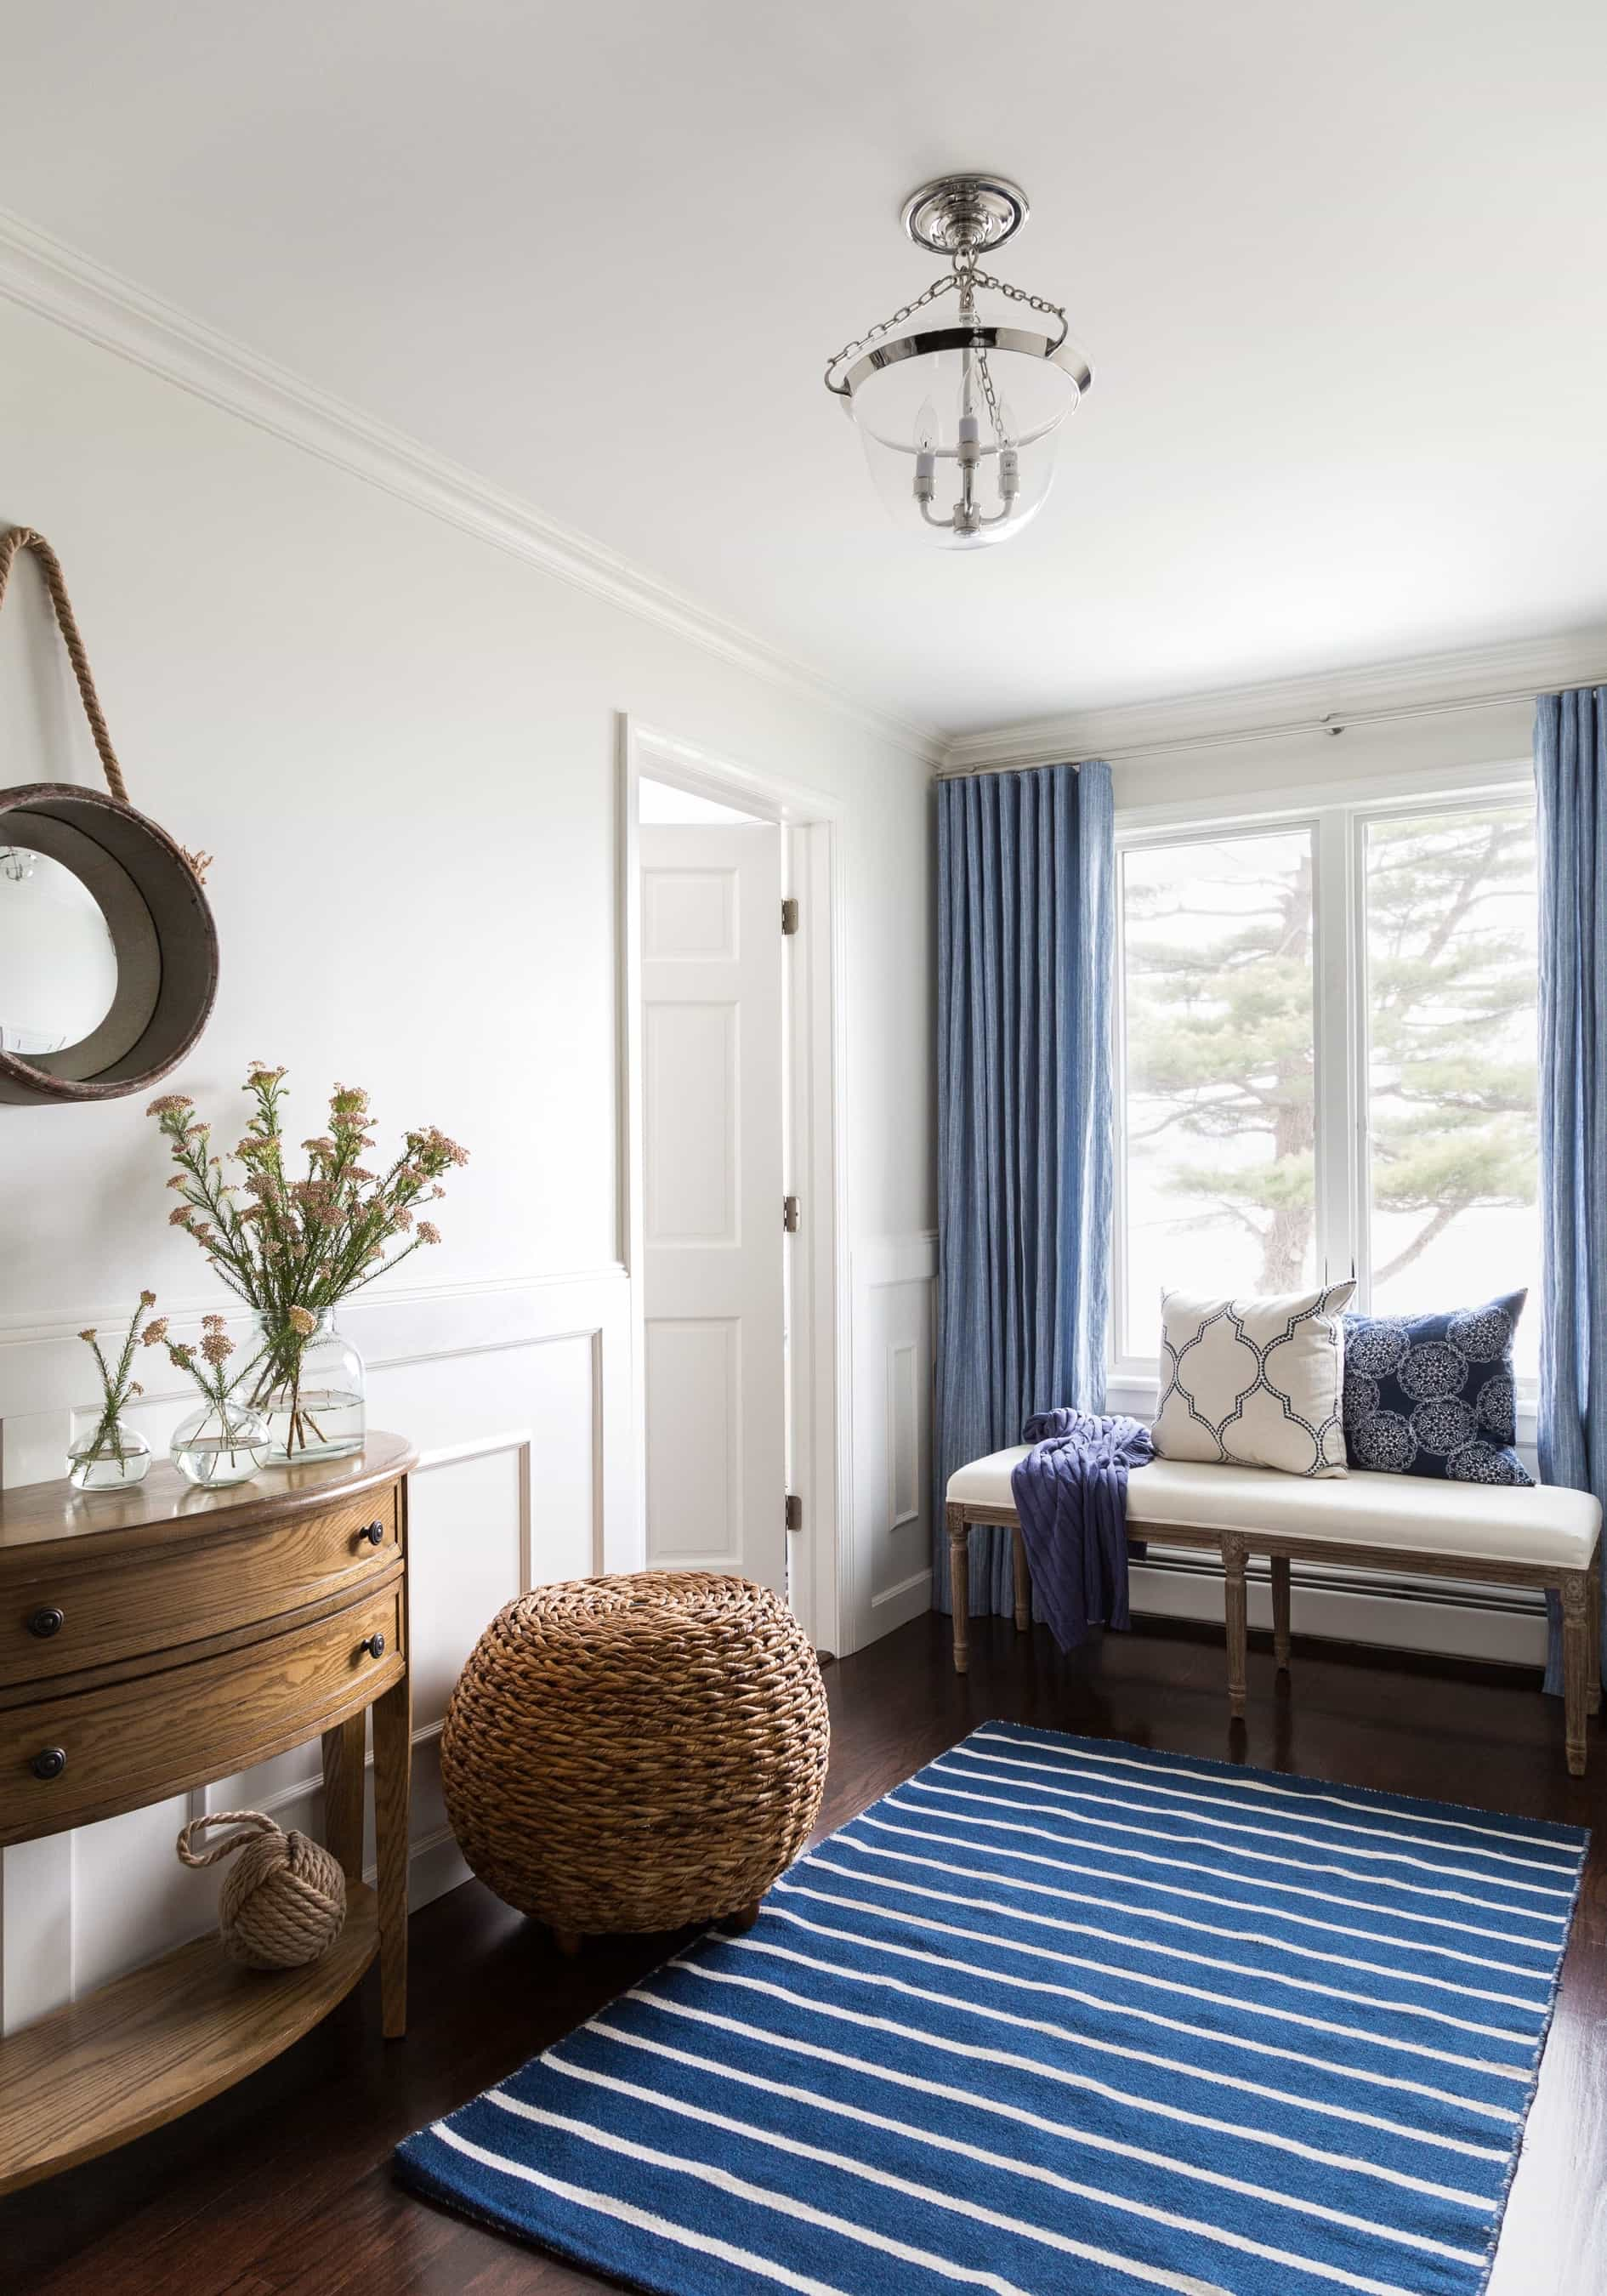 Featured Image of Simple Blue And White Colonial Hall With Bench